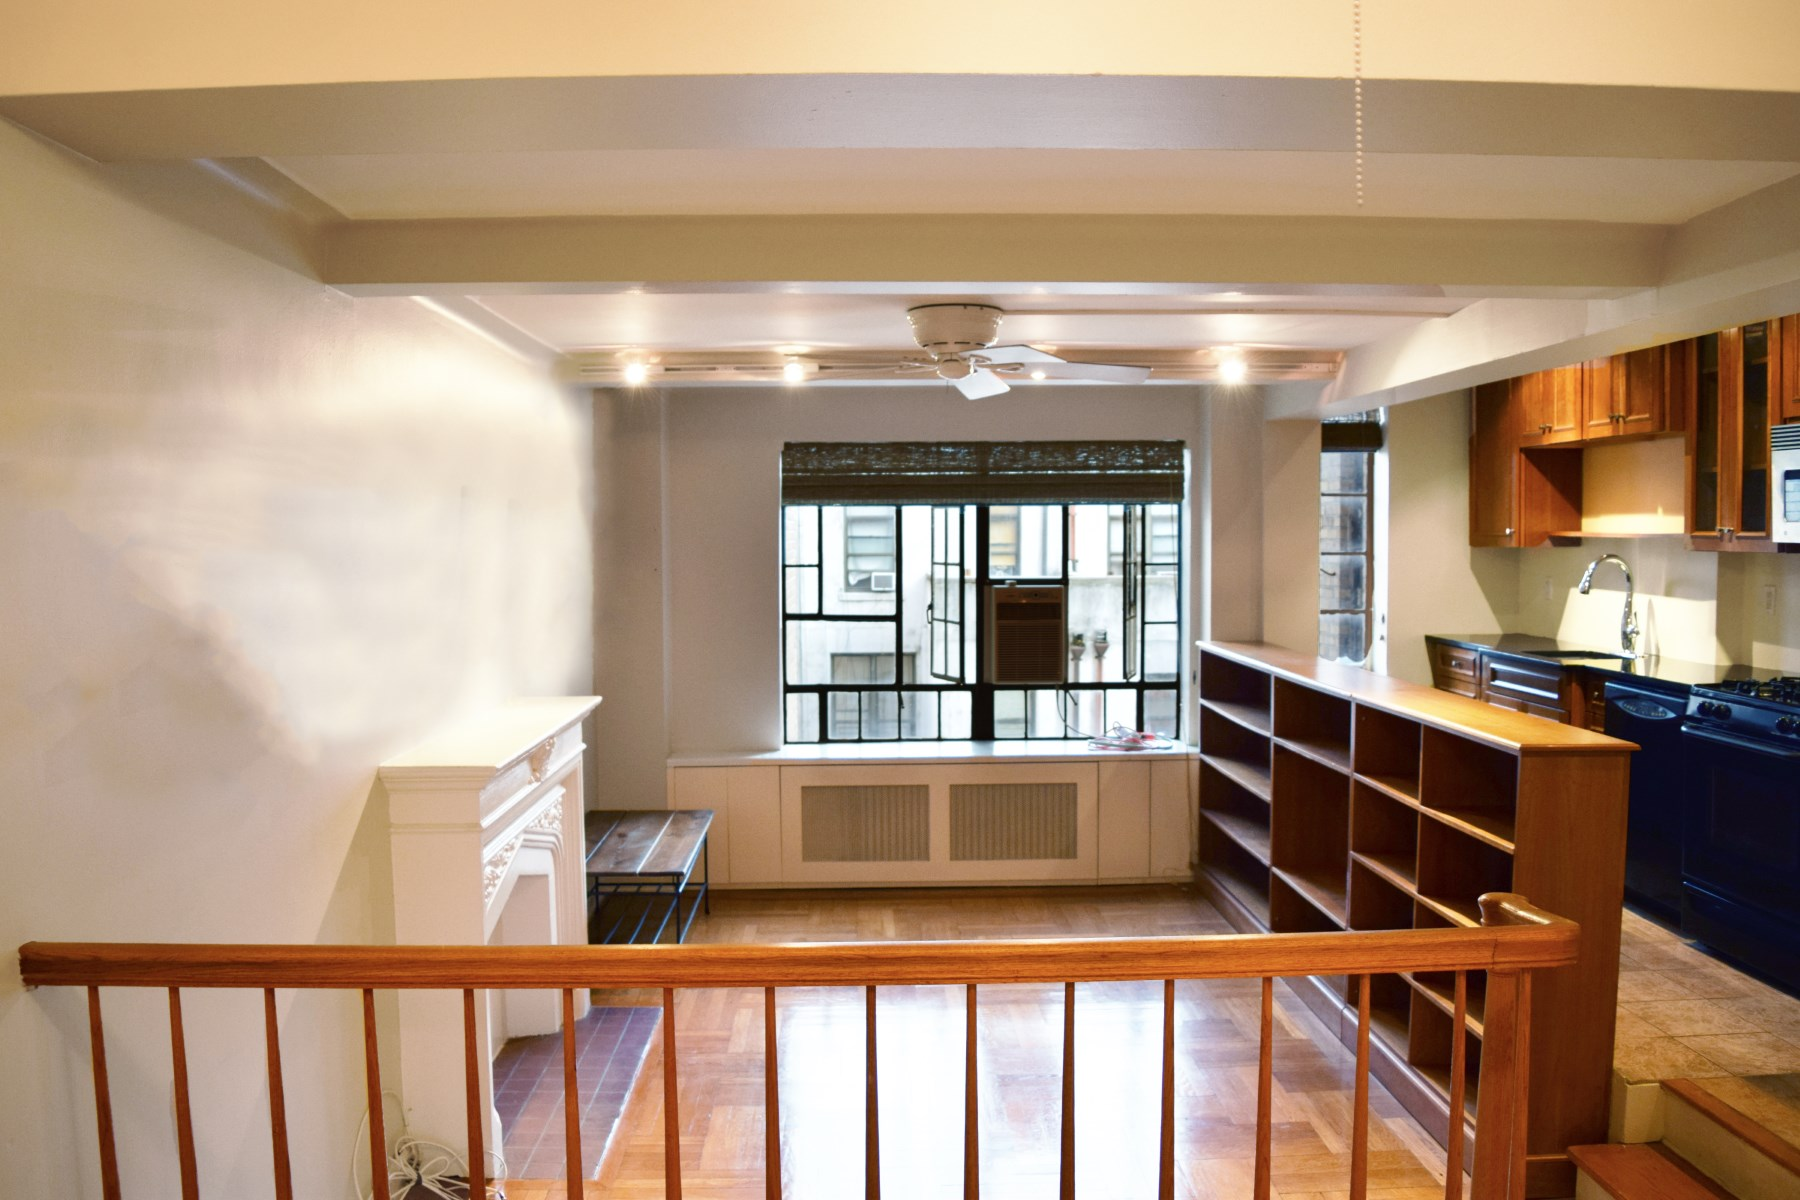 Co-op for Sale at 35 West 90th Street, Apt. 5H Upper West Side, New York, New York 10024 United States